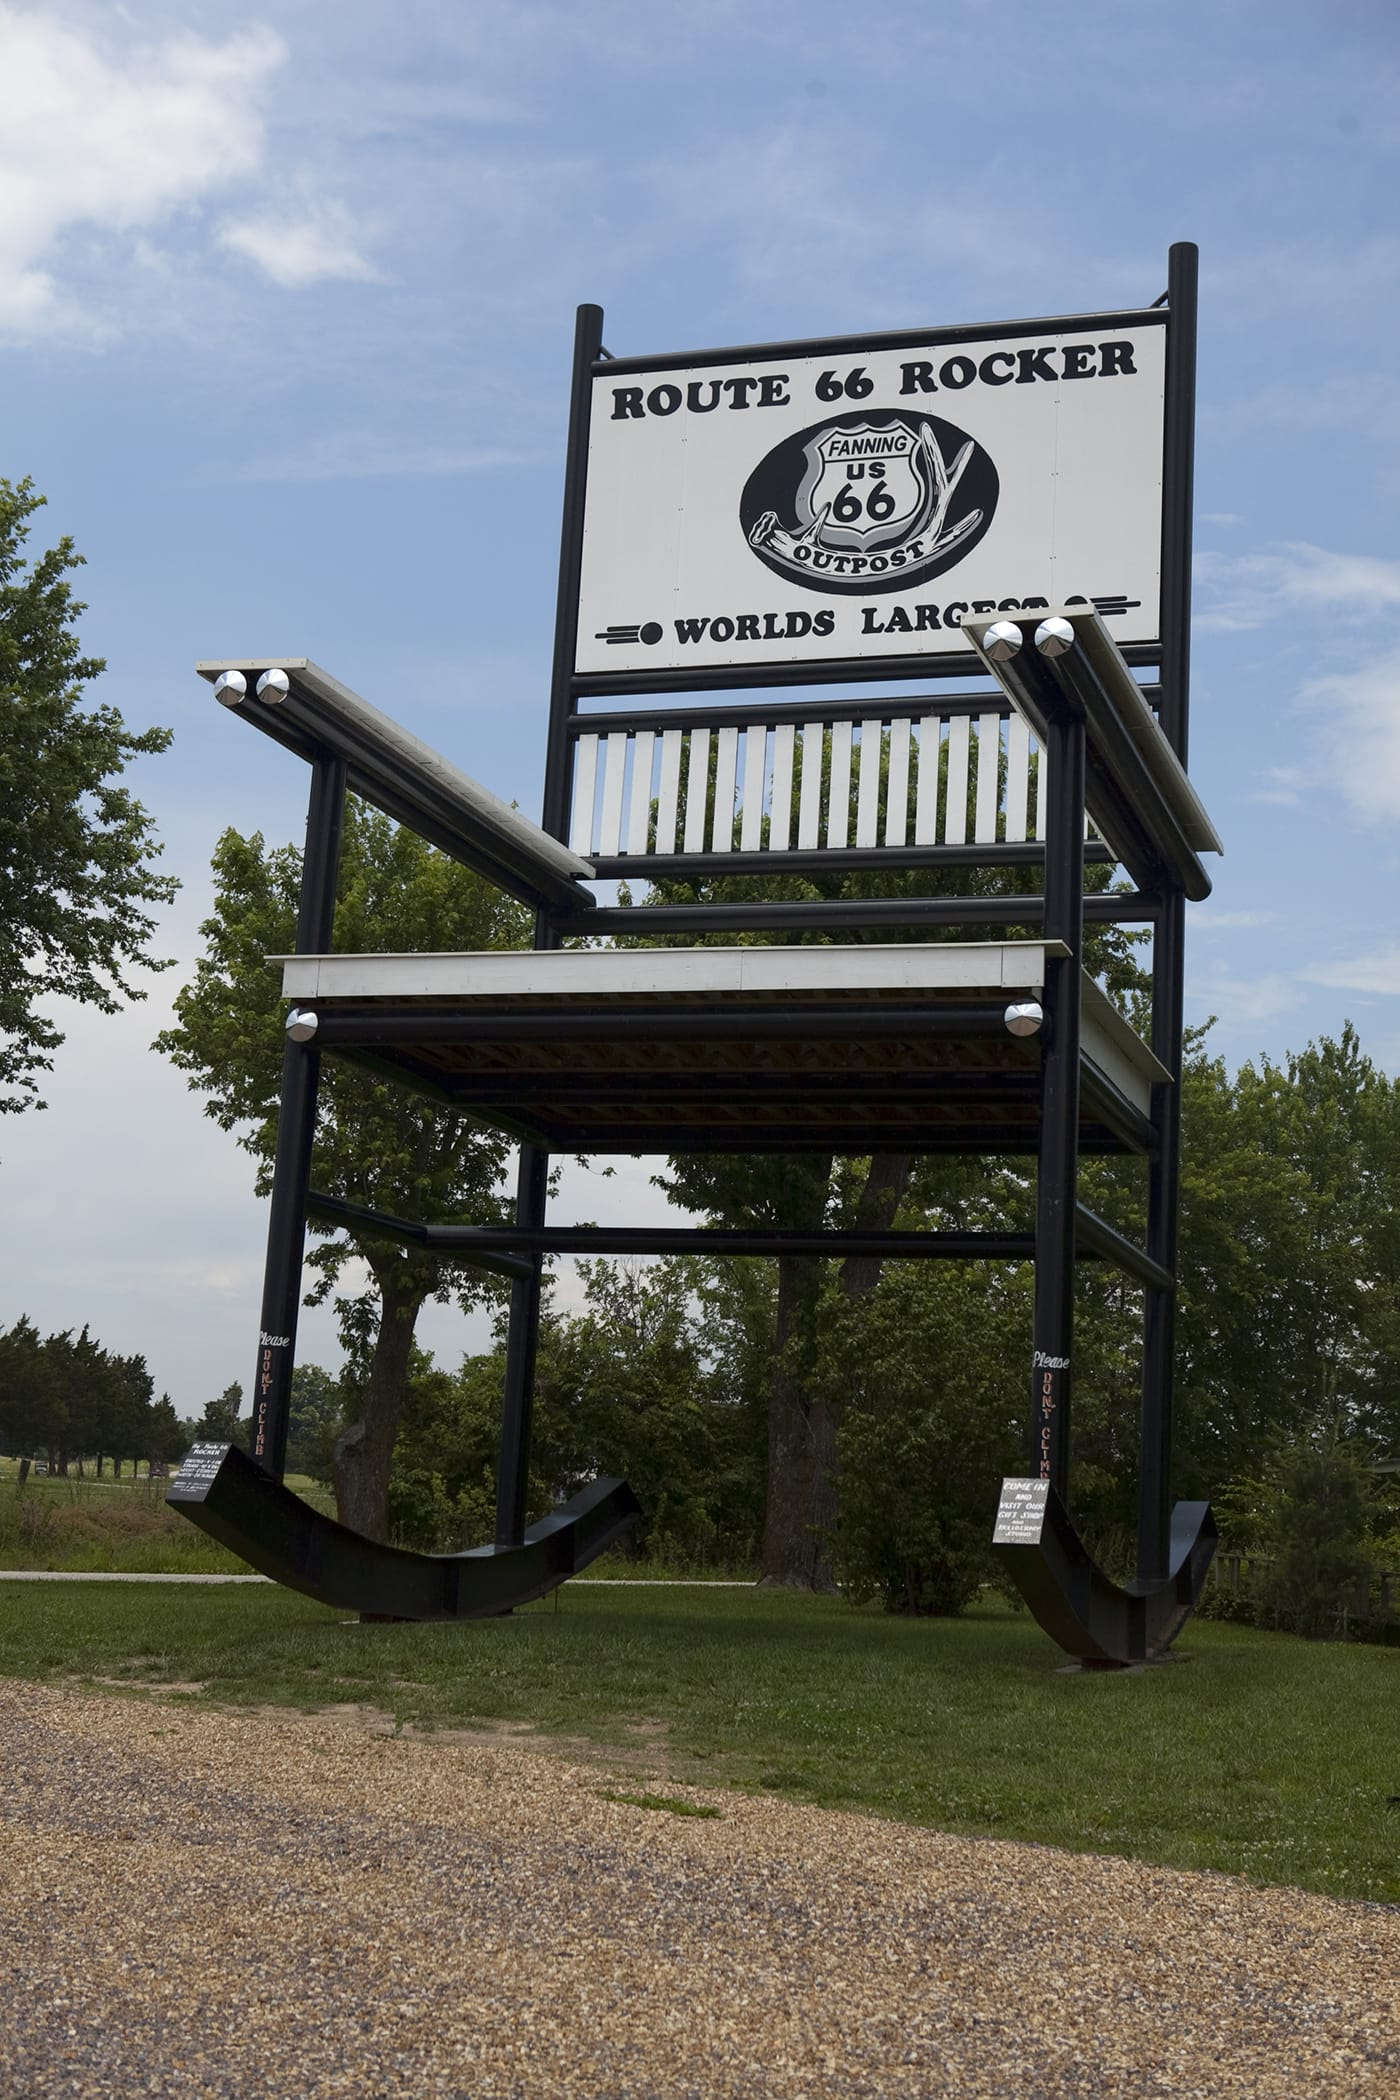 Admirable Worlds Largest Rocking Chair Route 66 Red Rocker In Cuba Alphanode Cool Chair Designs And Ideas Alphanodeonline